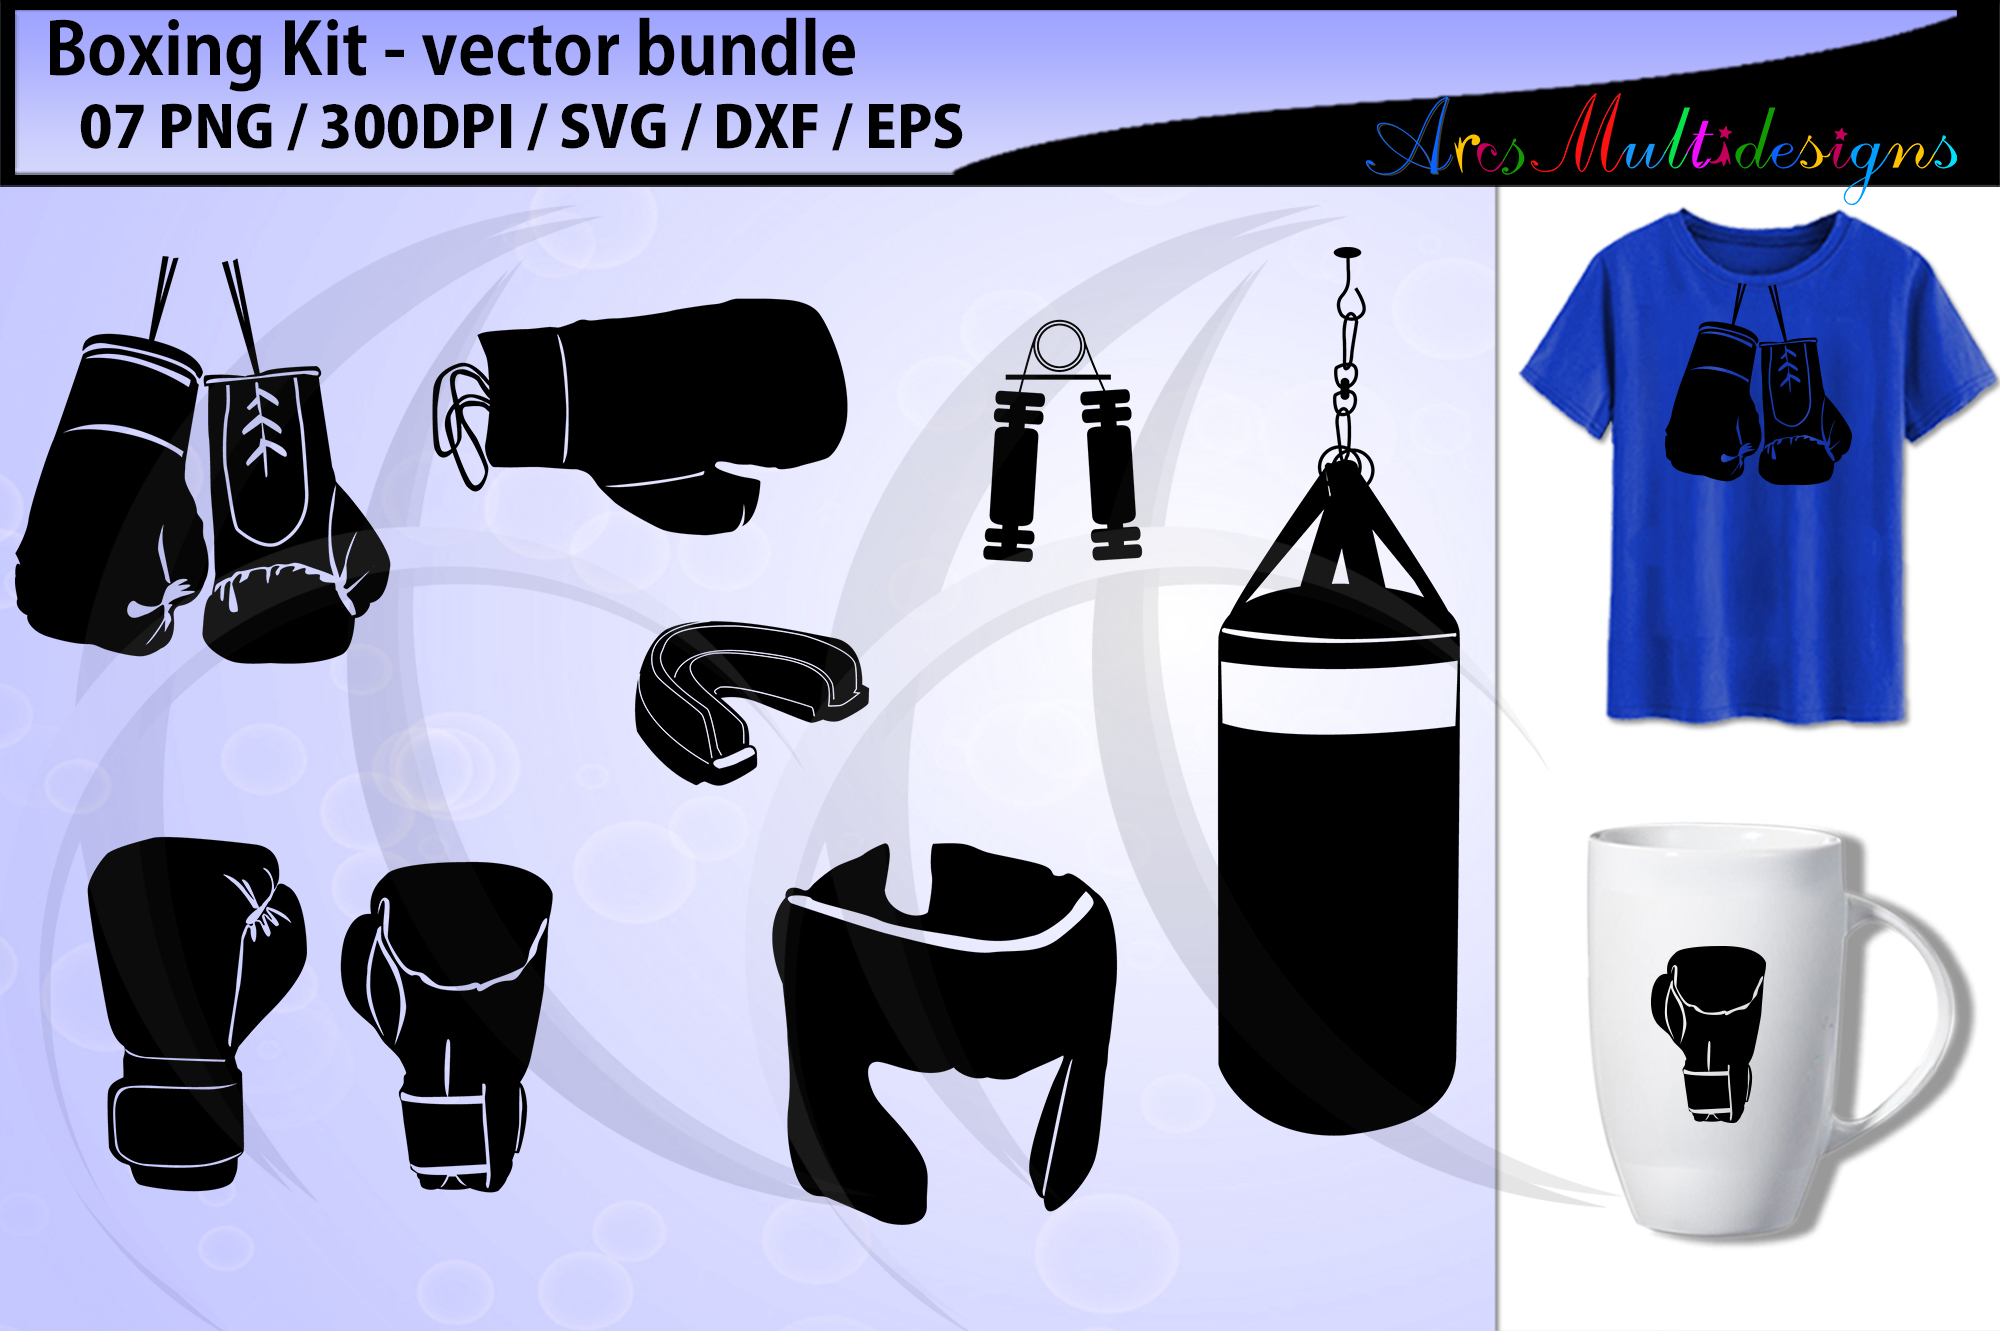 Download Free Boxing Kit Boxing Gloves Graphic By Arcs Multidesigns for Cricut Explore, Silhouette and other cutting machines.